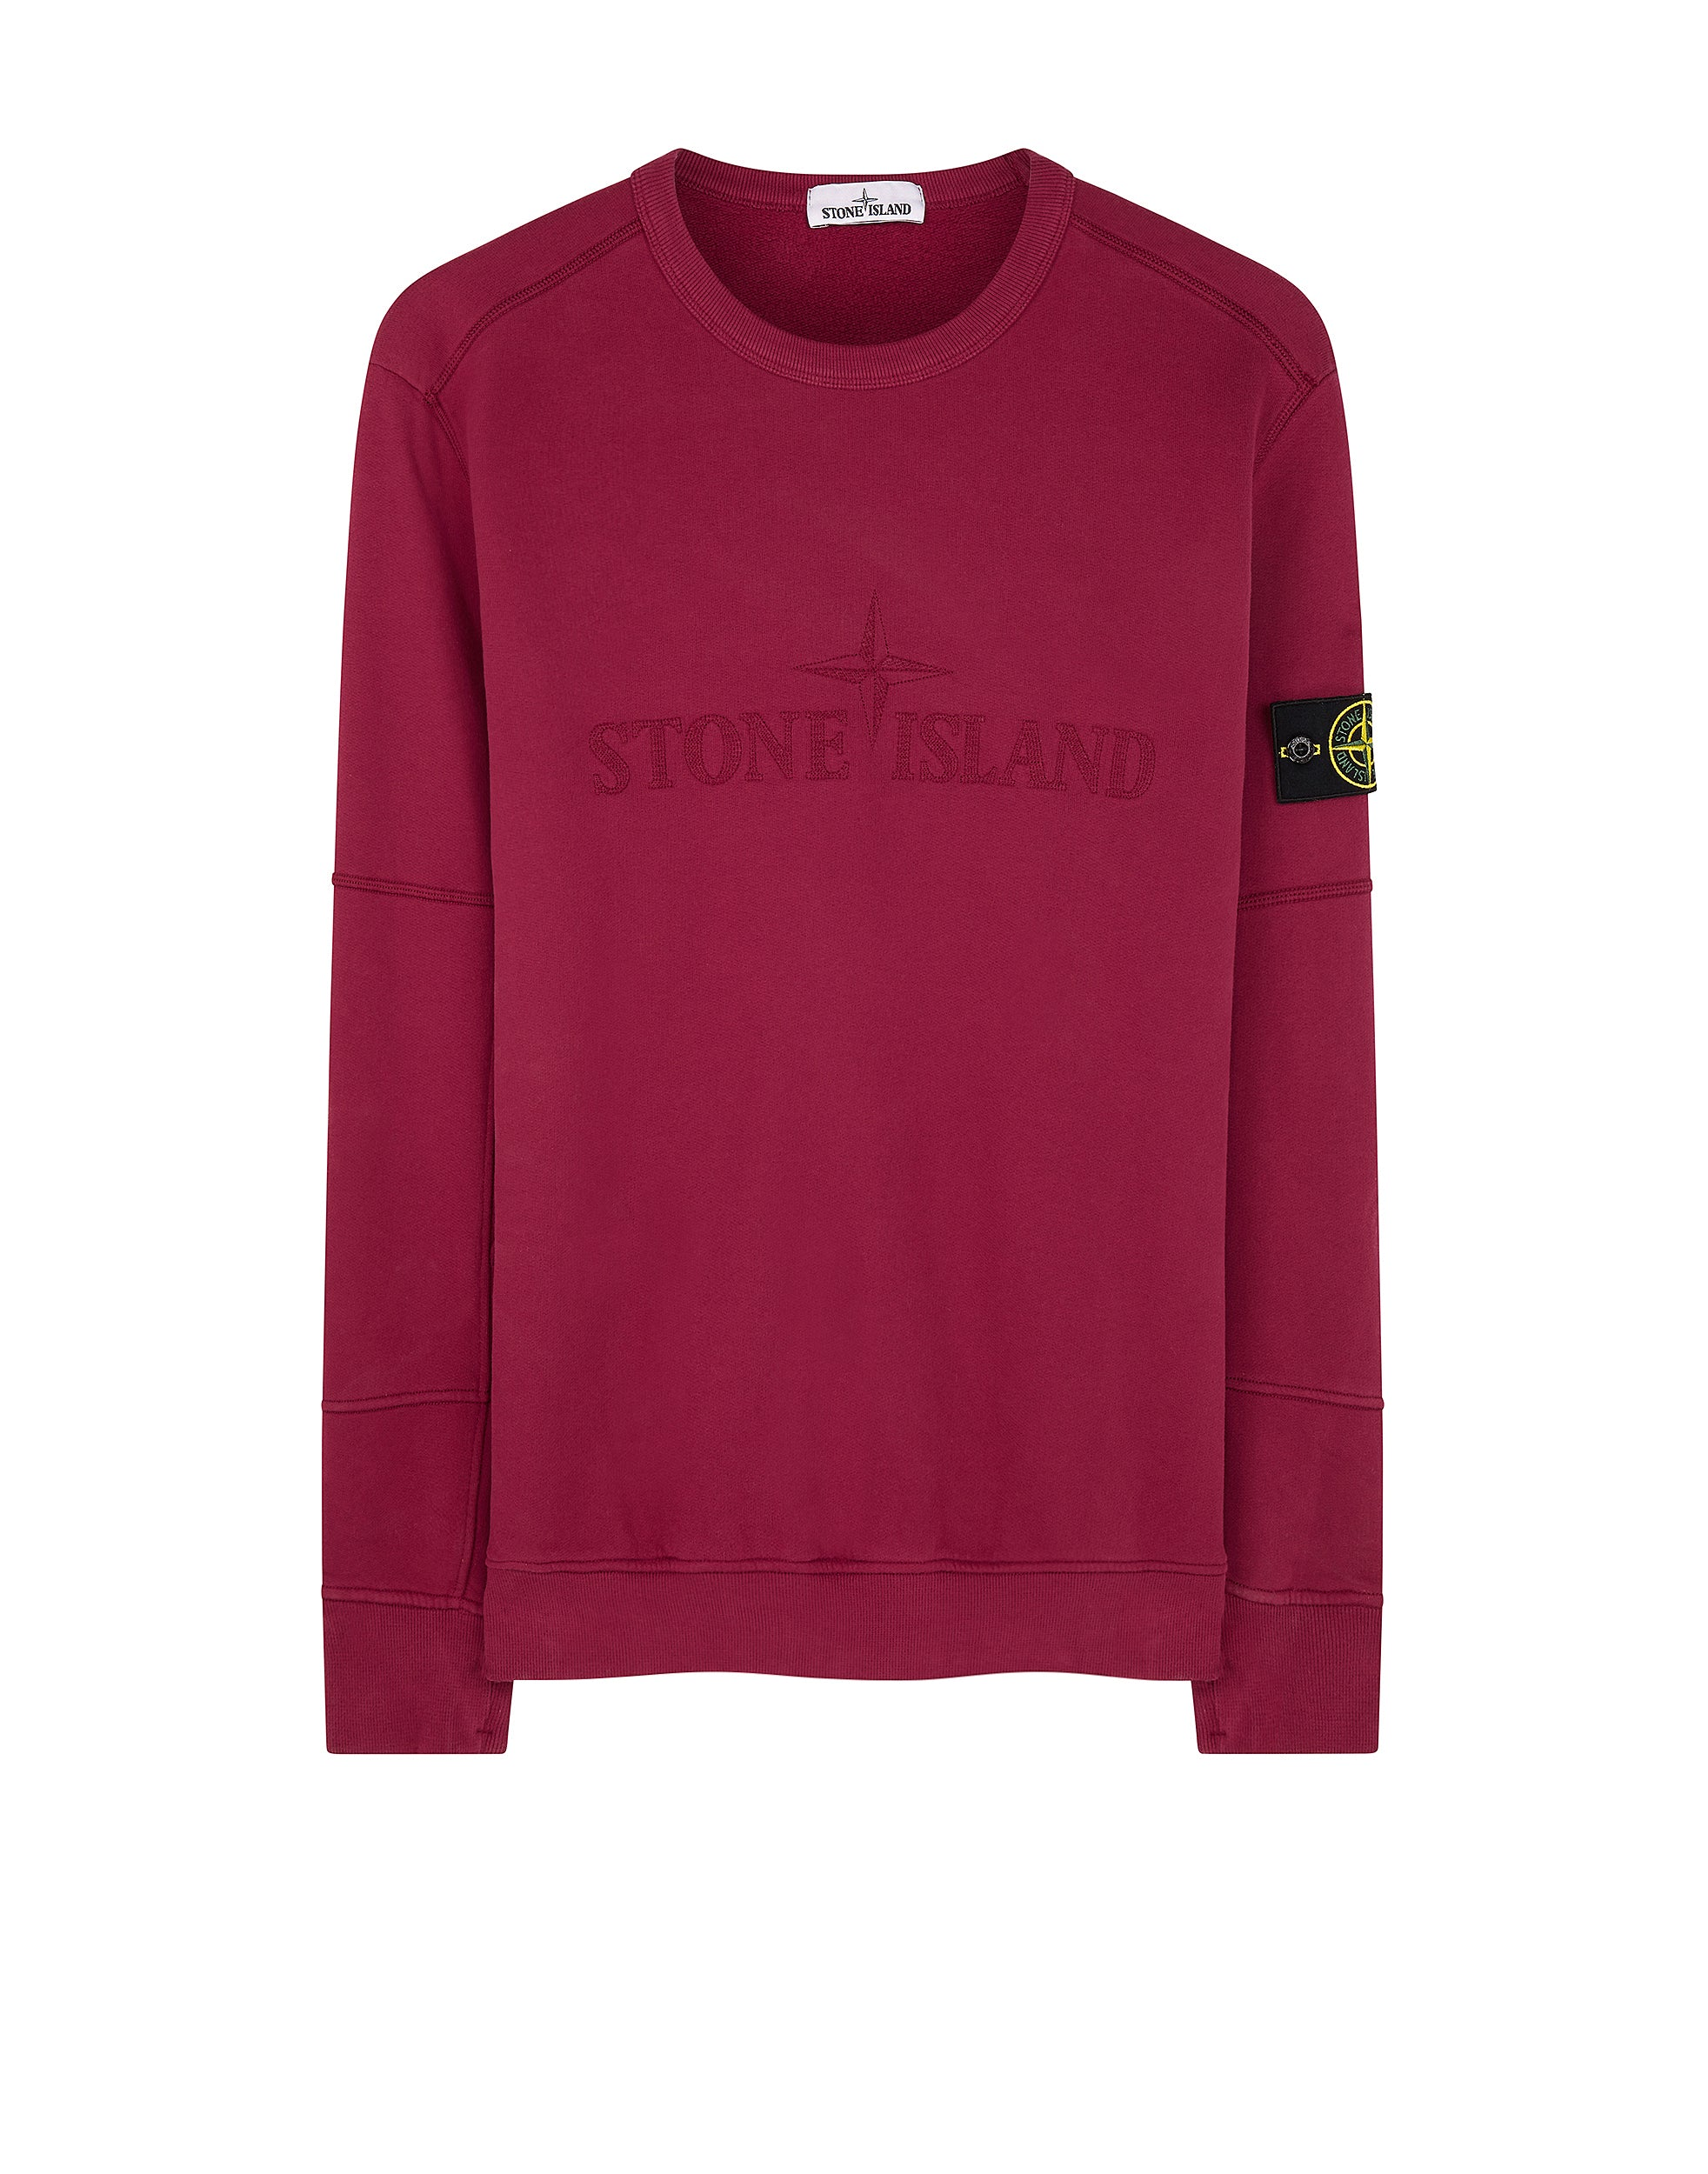 63420 Crewneck Brushed Cotton Sweatshirt in Cherry